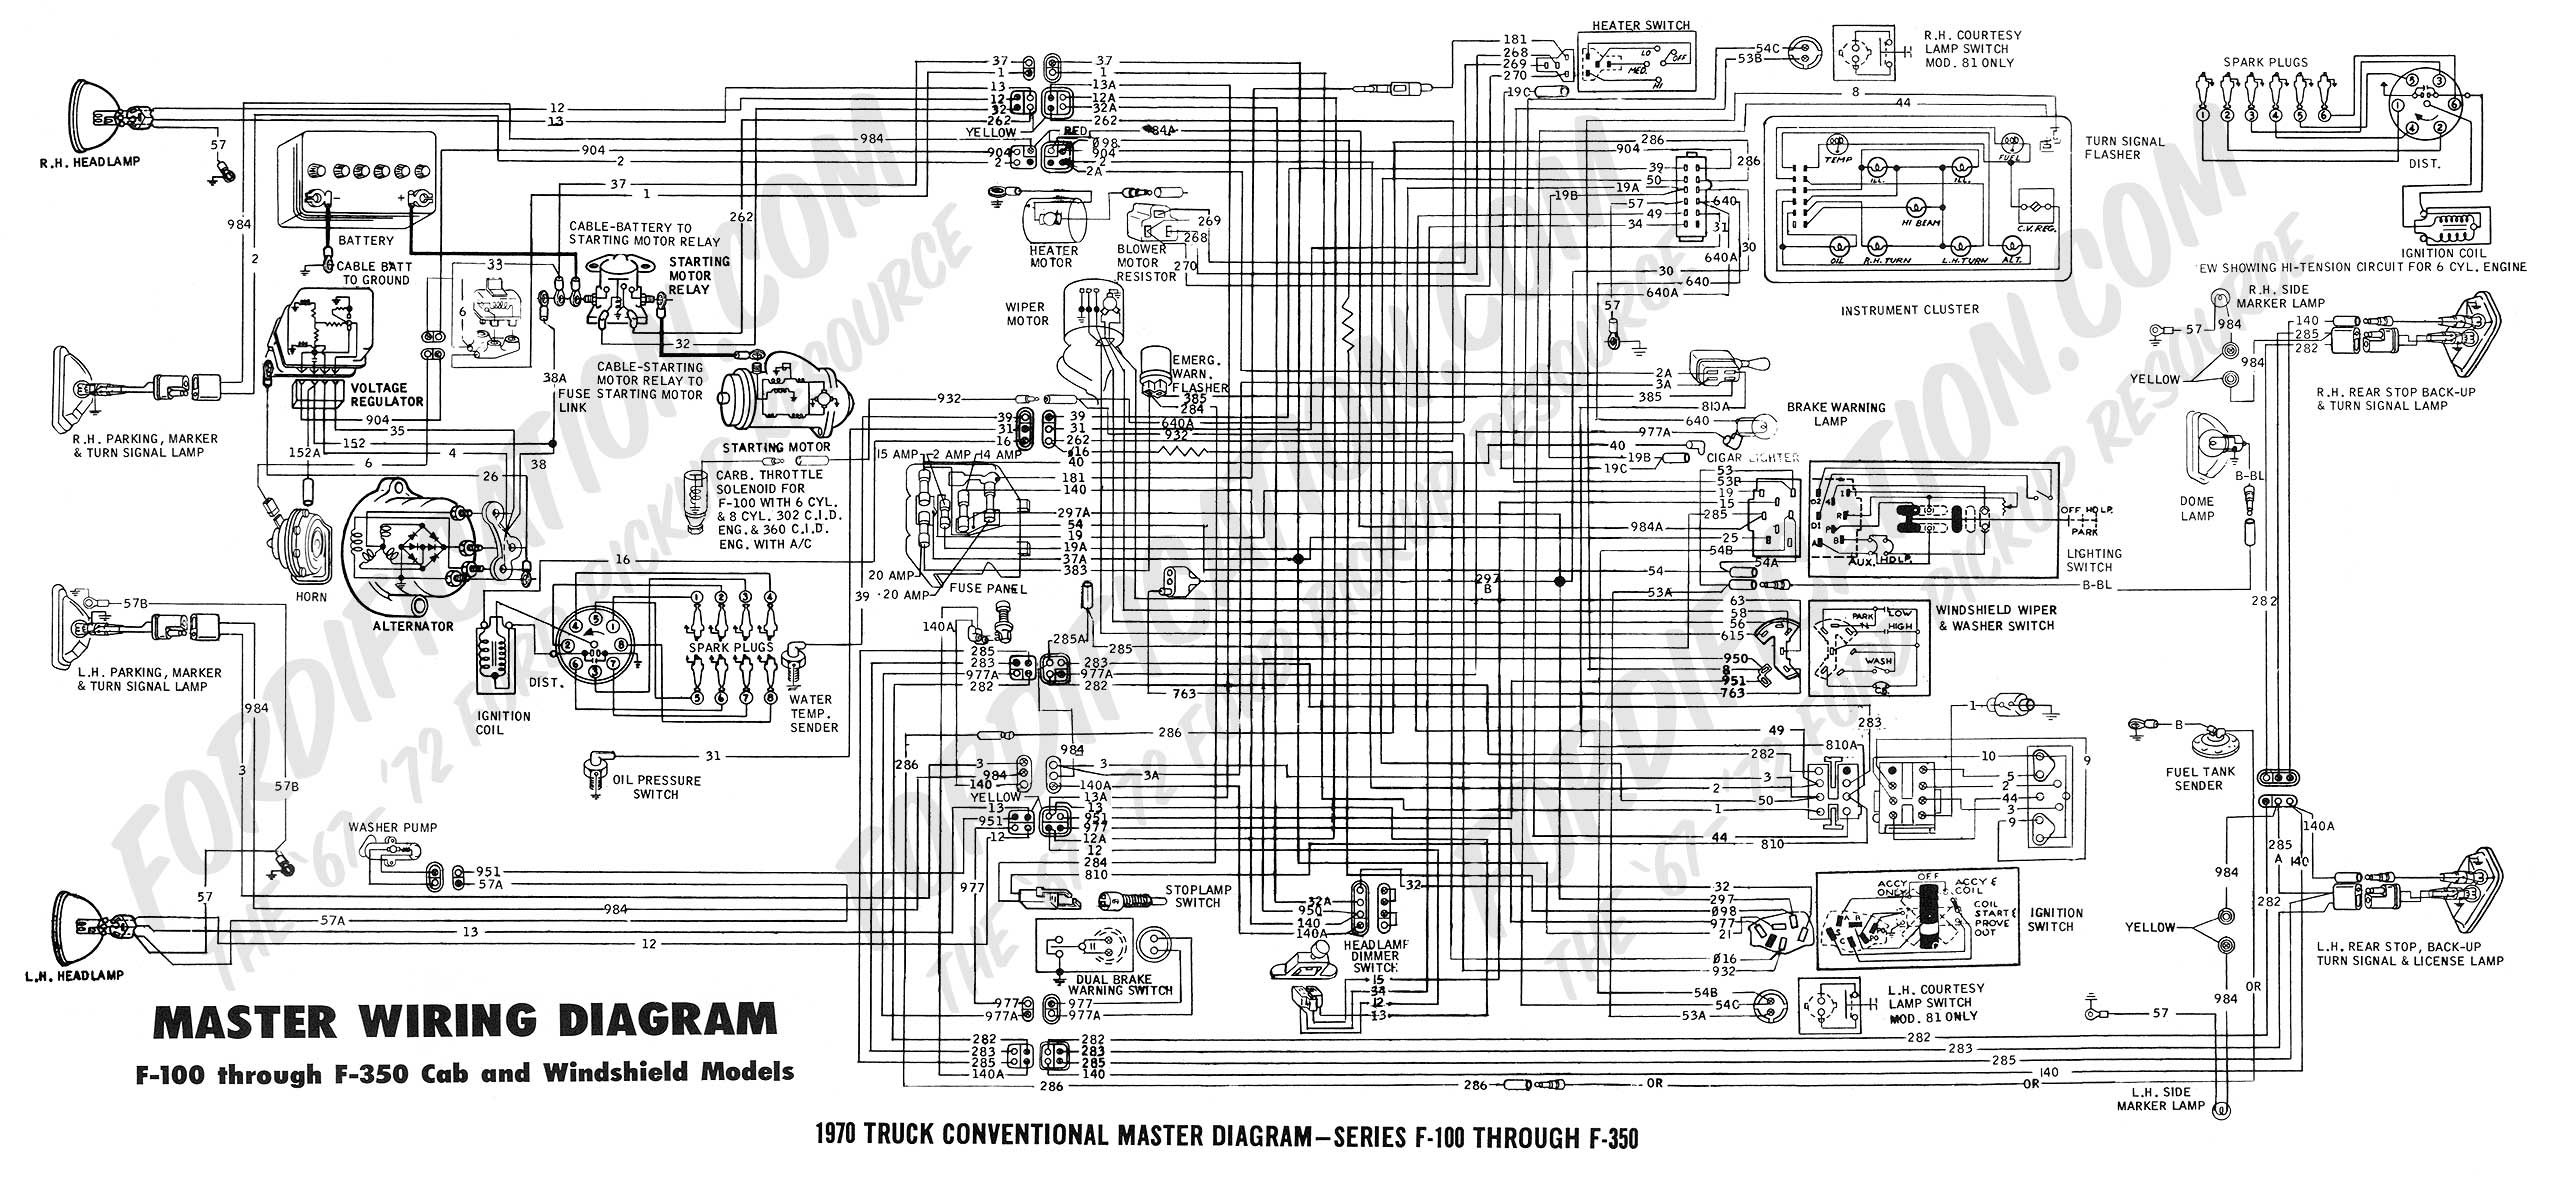 1956 F100 Wiring Diagram | Wiring Diagram F Wiring Schematics on